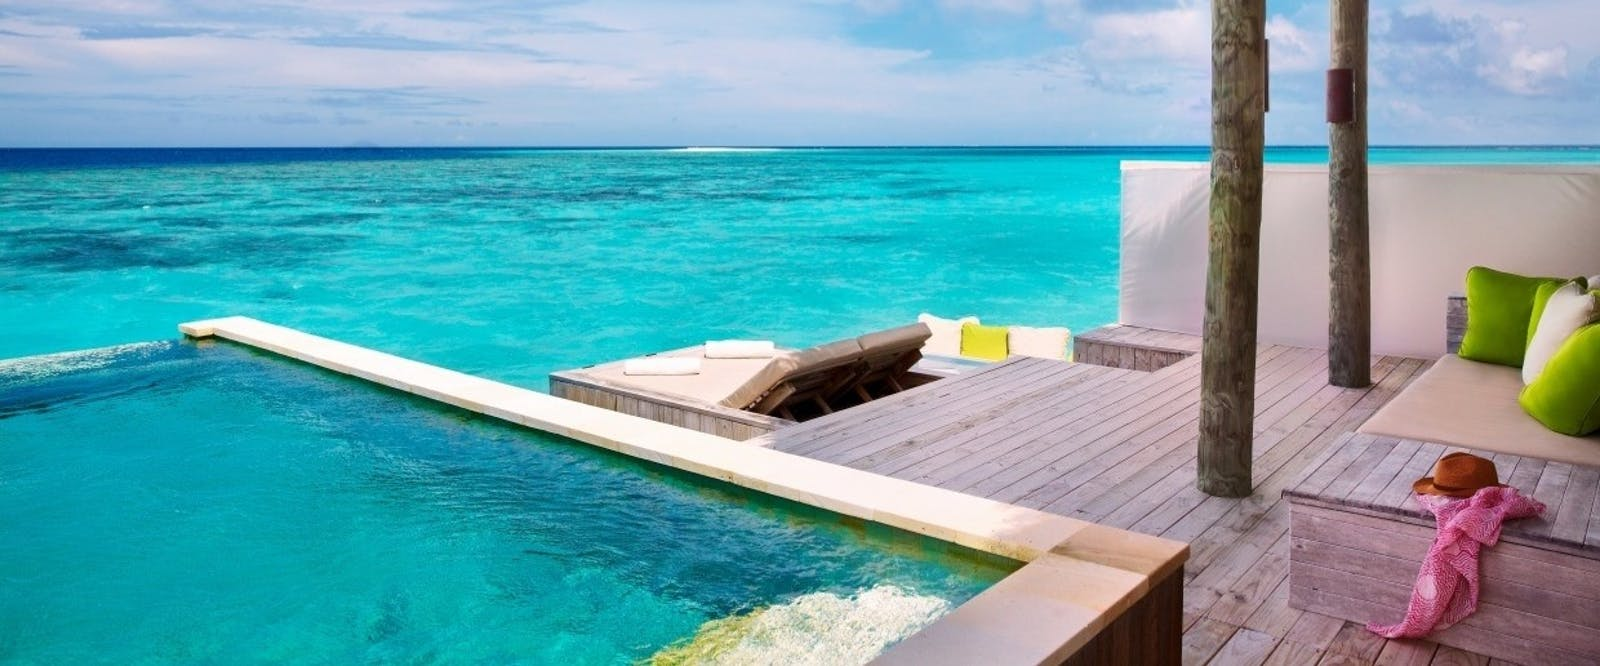 Laamu Water Villa with Pool Deck at Six Senses Laamu, Maldives, Indian Ocean